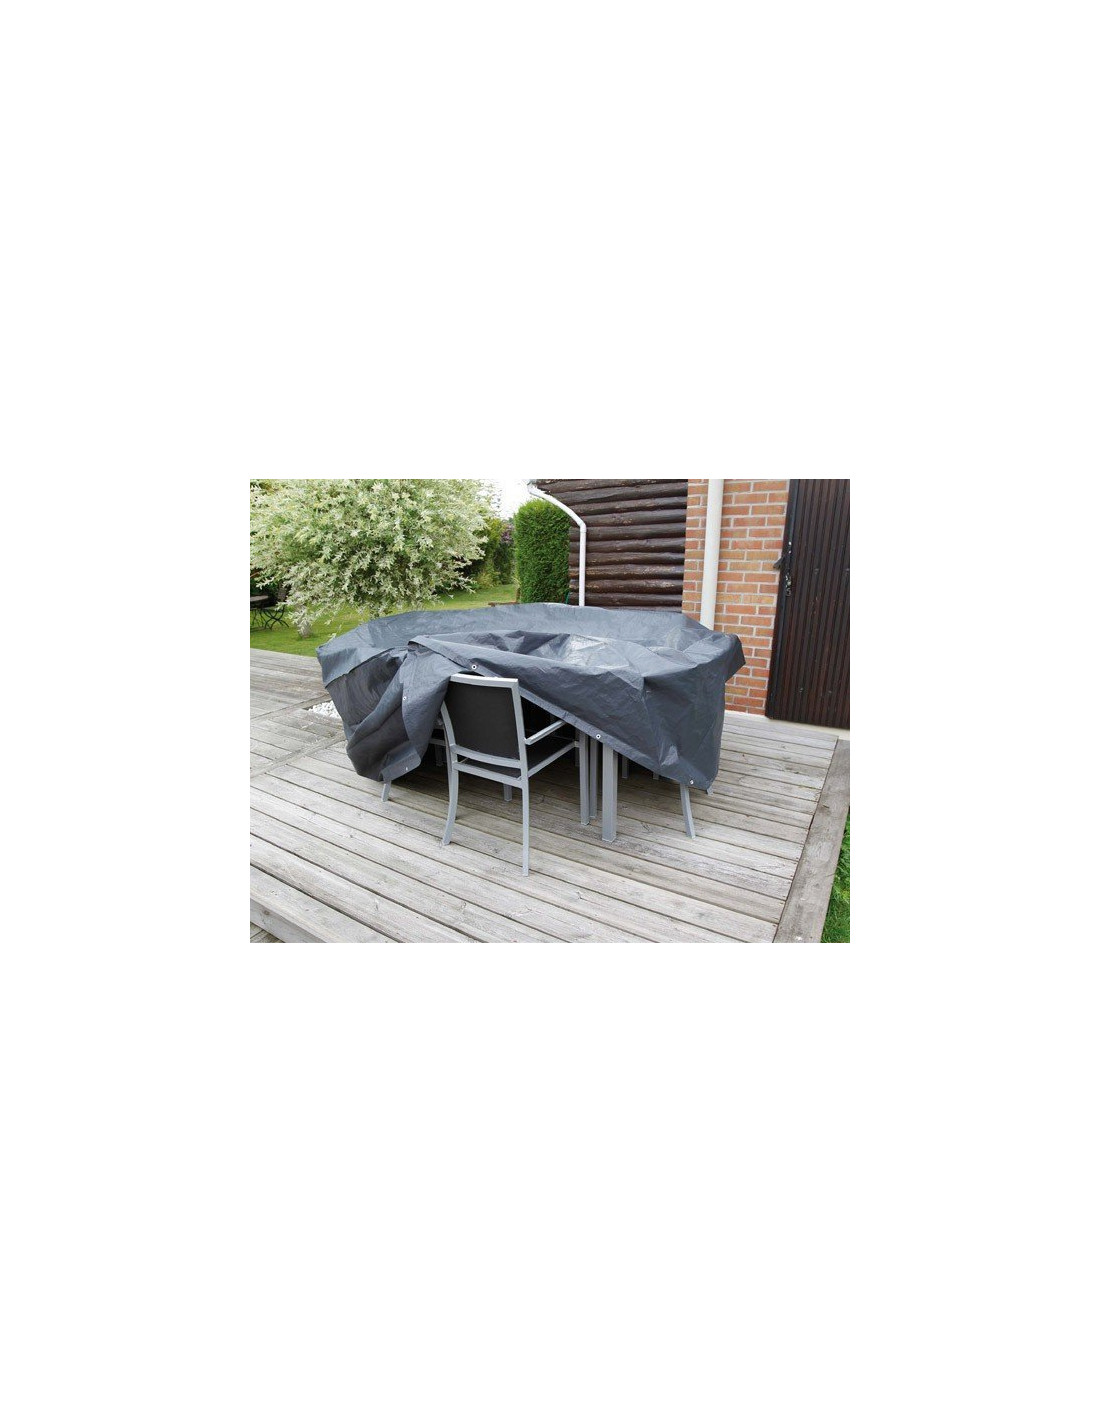 Emejing housse protection table de jardin ronde images amazing